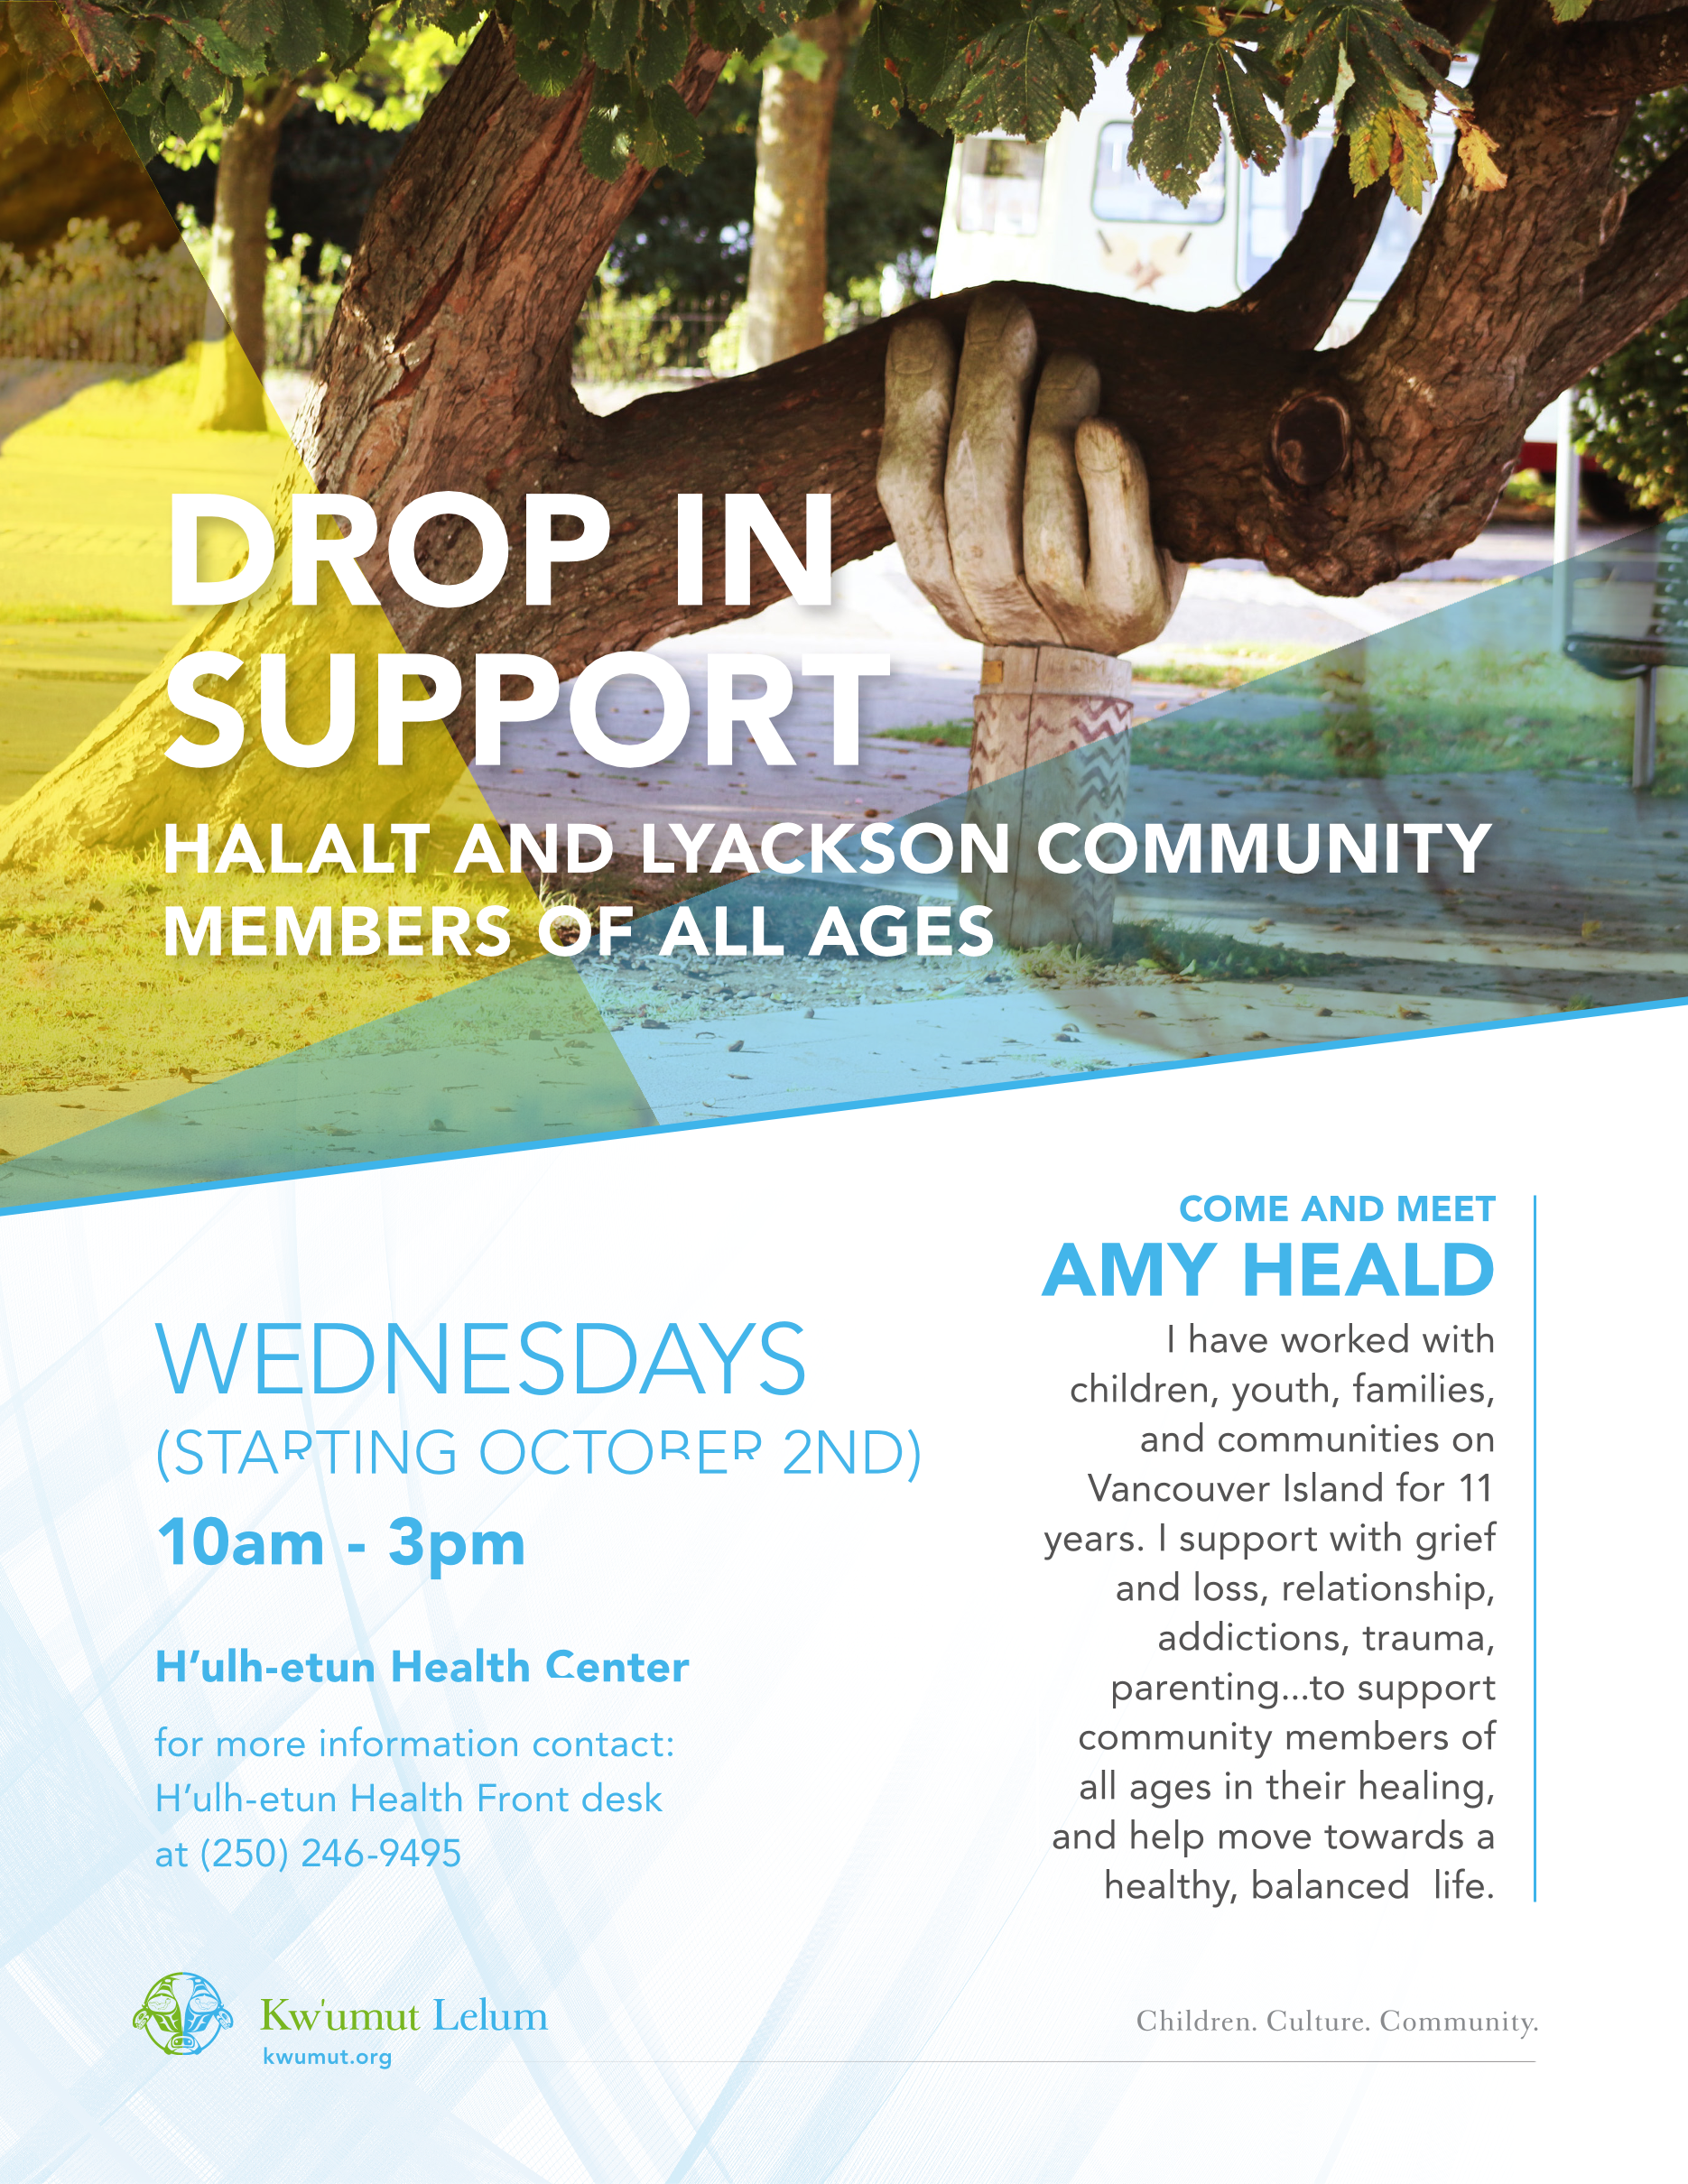 KL Support Drop In Amy Heald-1.png